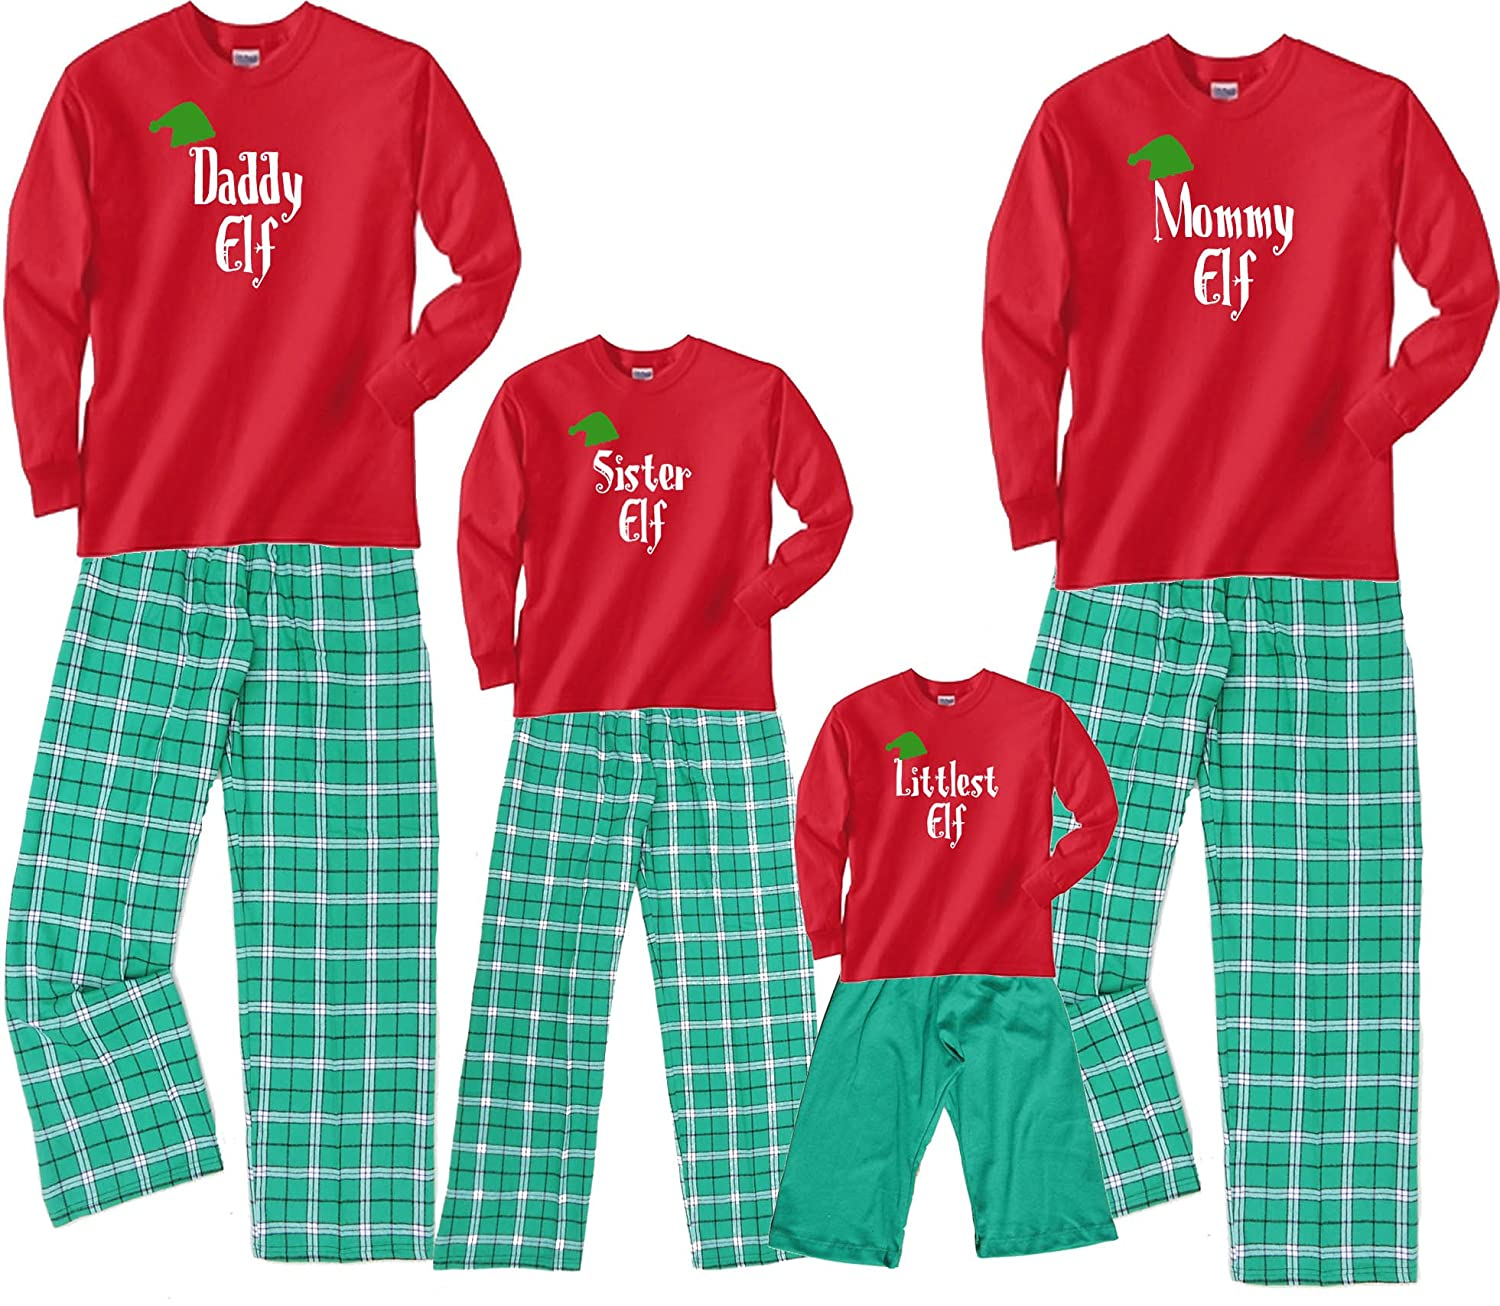 cfaedd2d1b Amazon.com: Footsteps Clothing Personalized Family Of Elves Matching  Christmas Adult Pajamas & Kids Playwear; Choose Adult or Kids: Clothing